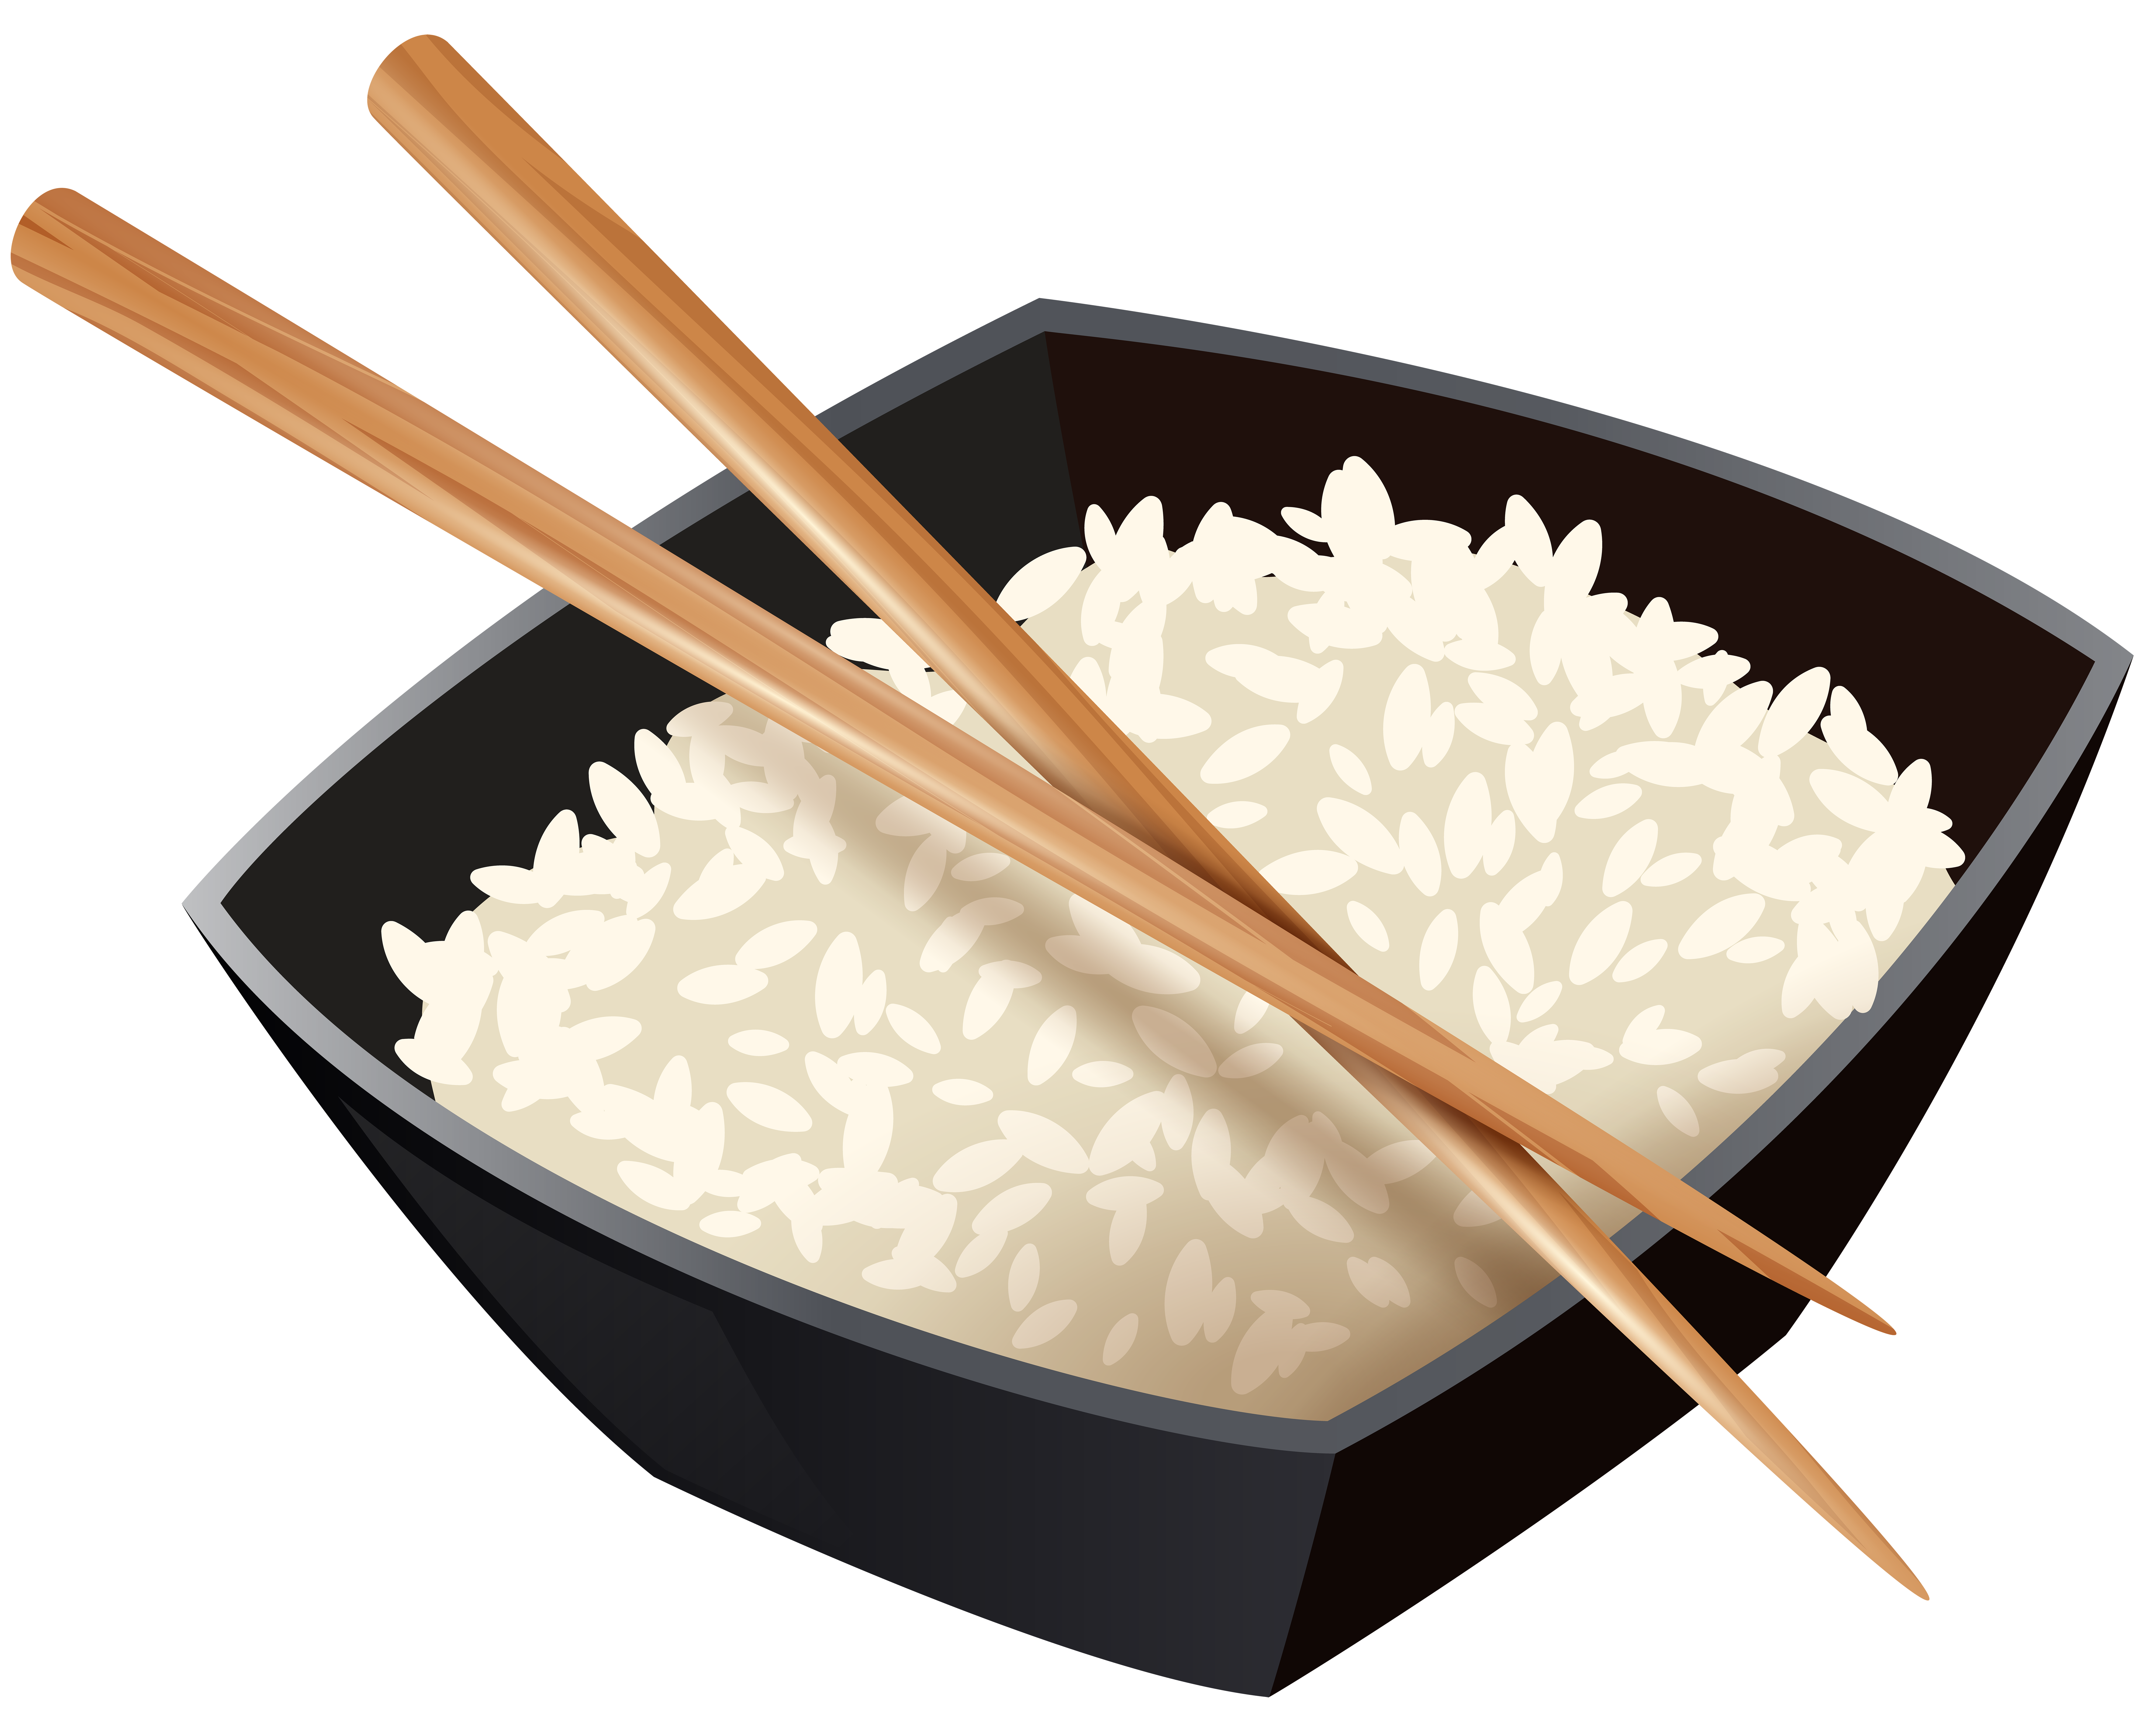 Rice clipart image processing clipart images gallery for.